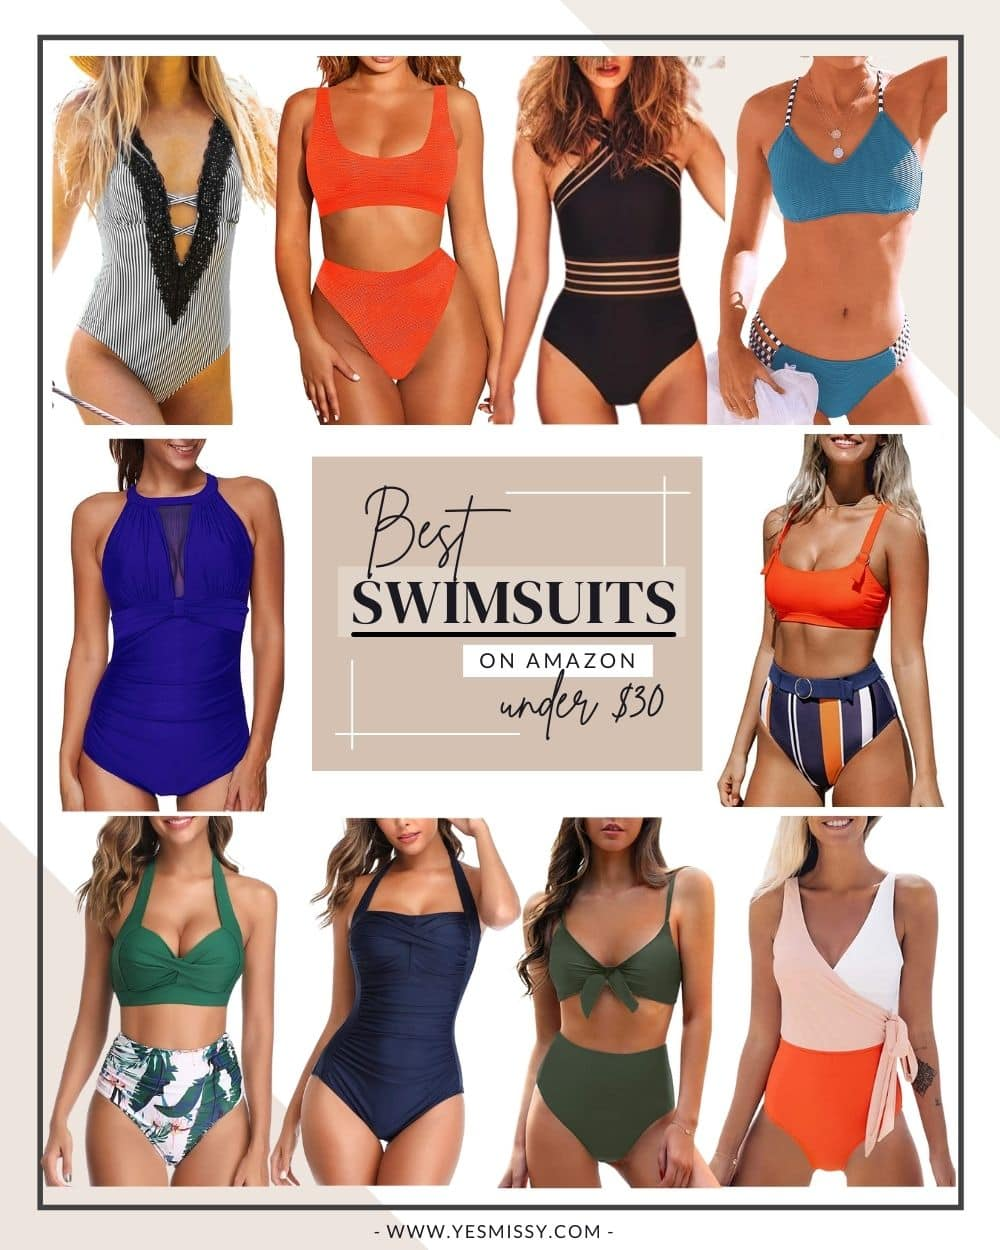 A roundup of the best selling swimsuits on Amazon. Whether you're looking for a bikini or one piece. Here are 10 of the top rated bathing suits under $30 that you'll find on Amazon! Visit yesmissy.com for all the links!